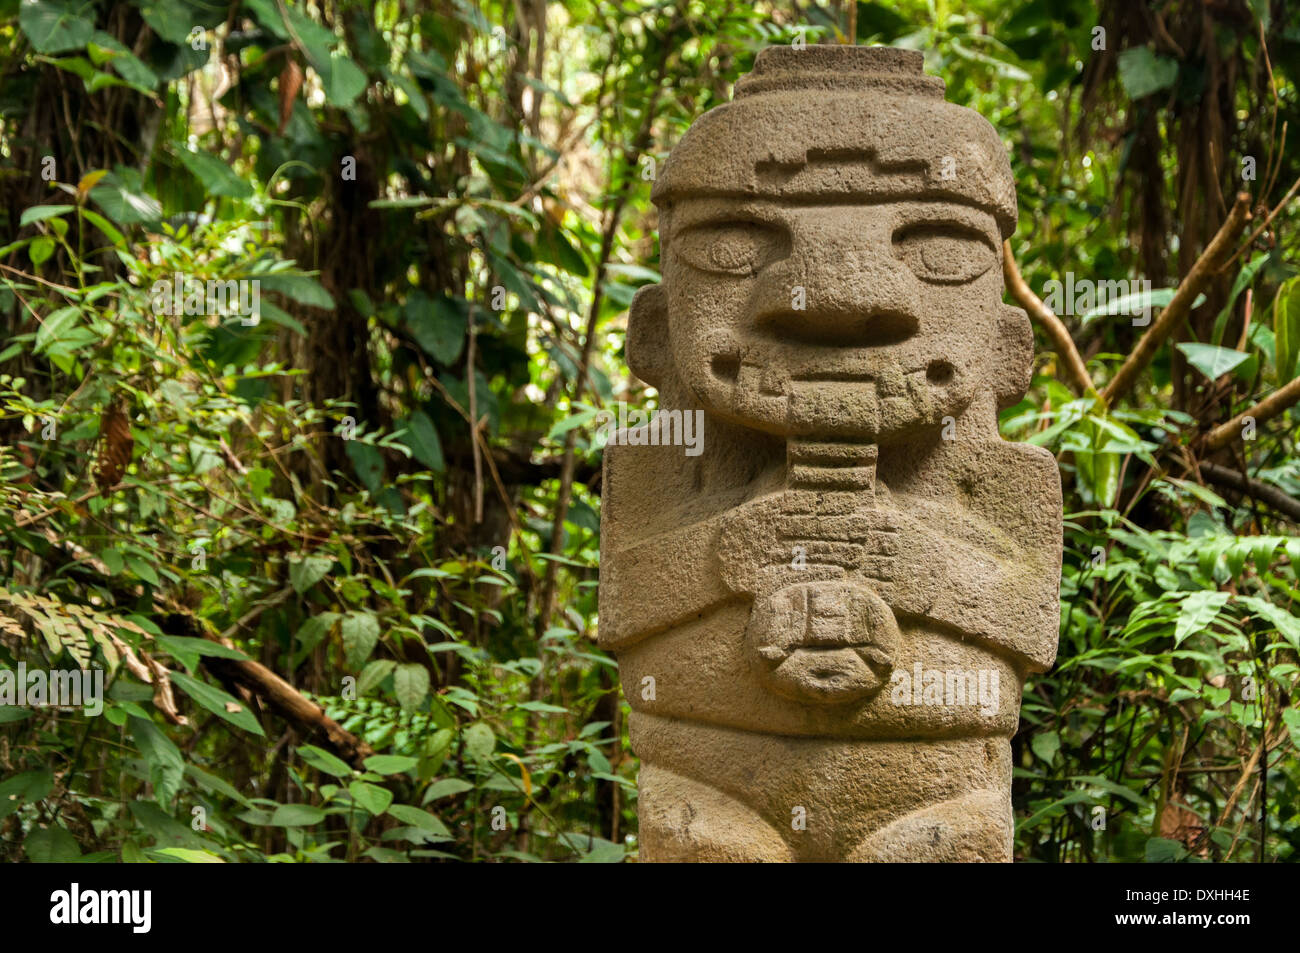 An ancient, flute playing, pre-columbian statue in San Agustin, Colombia - Stock Image